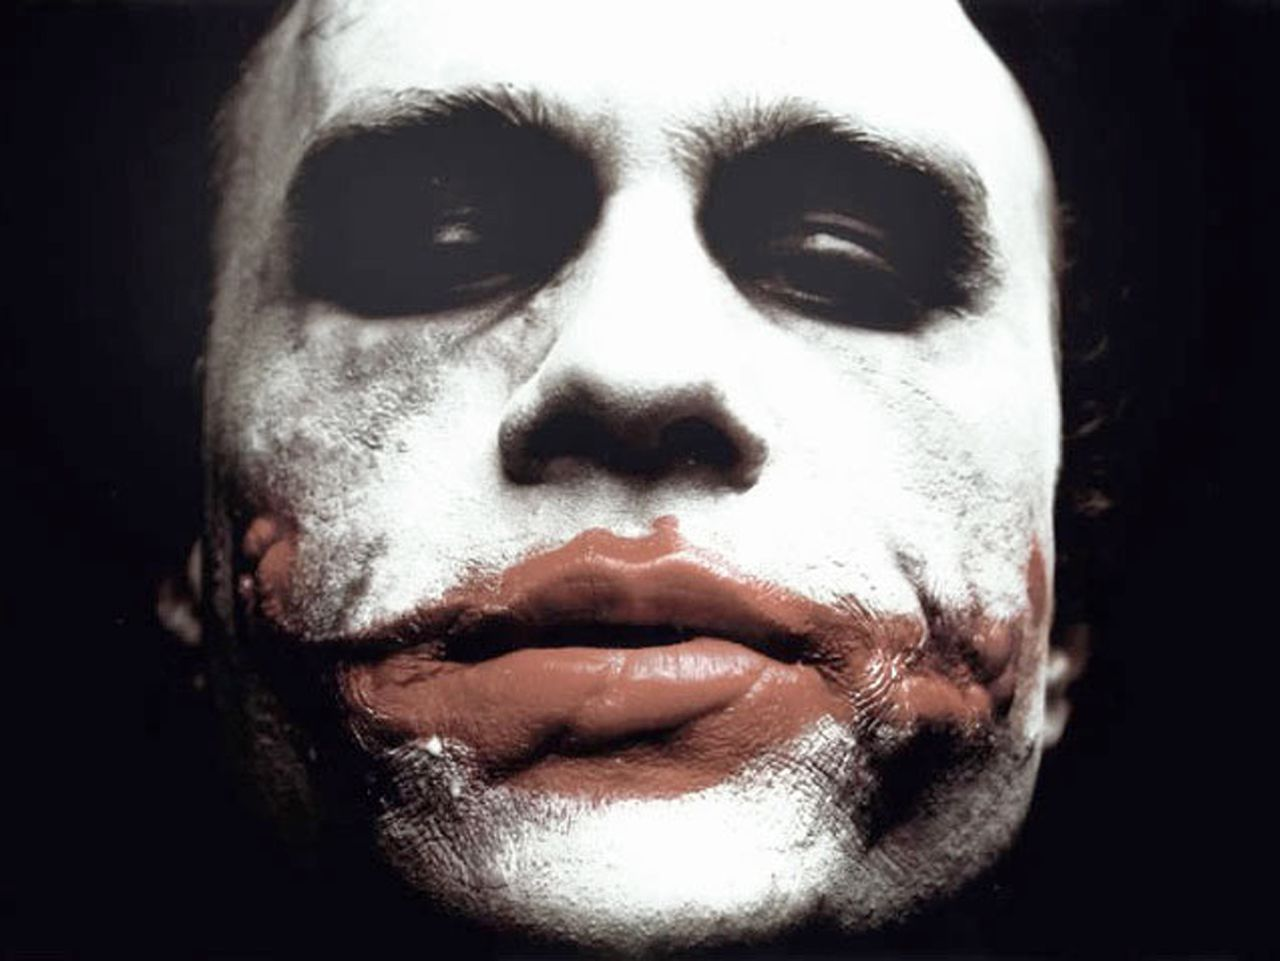 """Actor Heath Ledger is shown in an undated publicity photo as The Joker in Warner Bros. Pictures' and Legendary Pictures' action drama """"The Dark Knight."""" Ledger was found dead in his New York apartment January 22, 2008, New York City police said. REUTERS/Warner Bros./Handout. NO SALES. NO ARCHIVES. EDITORIAL USE ONLY. NOT FOR SALE FOR MARKETING OR ADVERTISING CAMPAIGNS."""